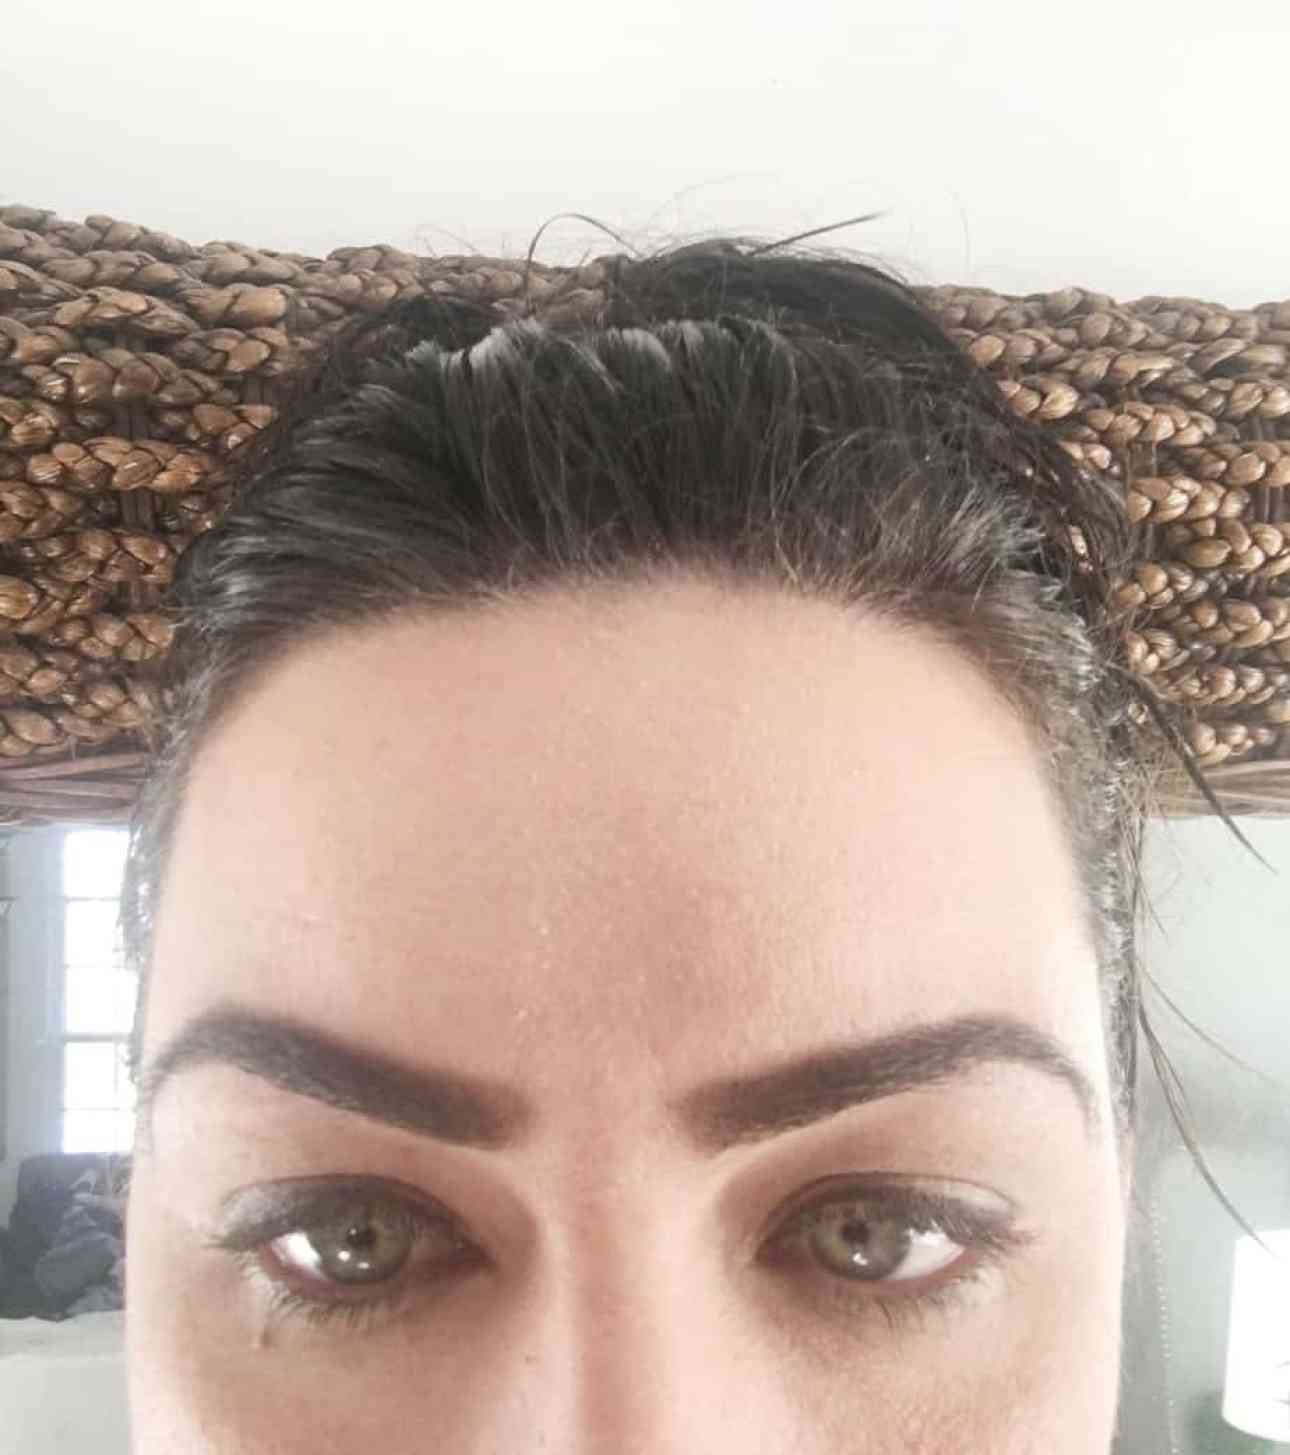 The perfect eyebrows shaped.